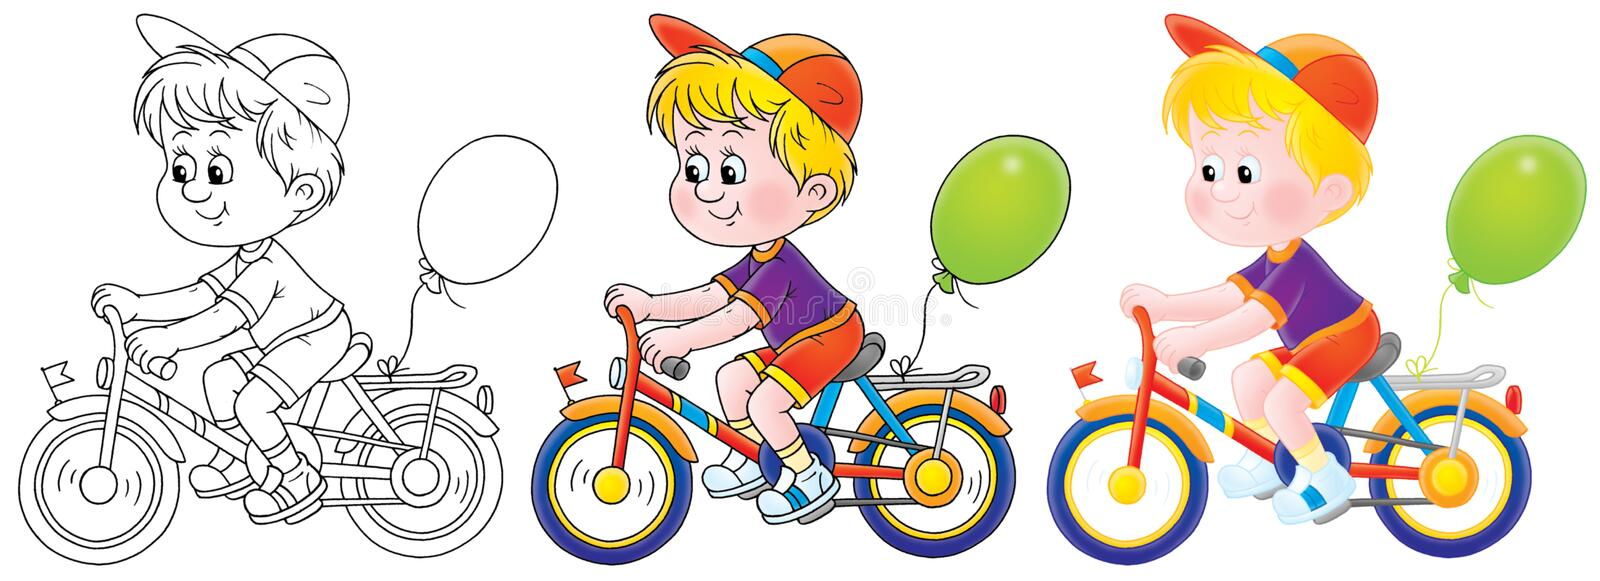 Boy riding a bicycle royalty free illustration